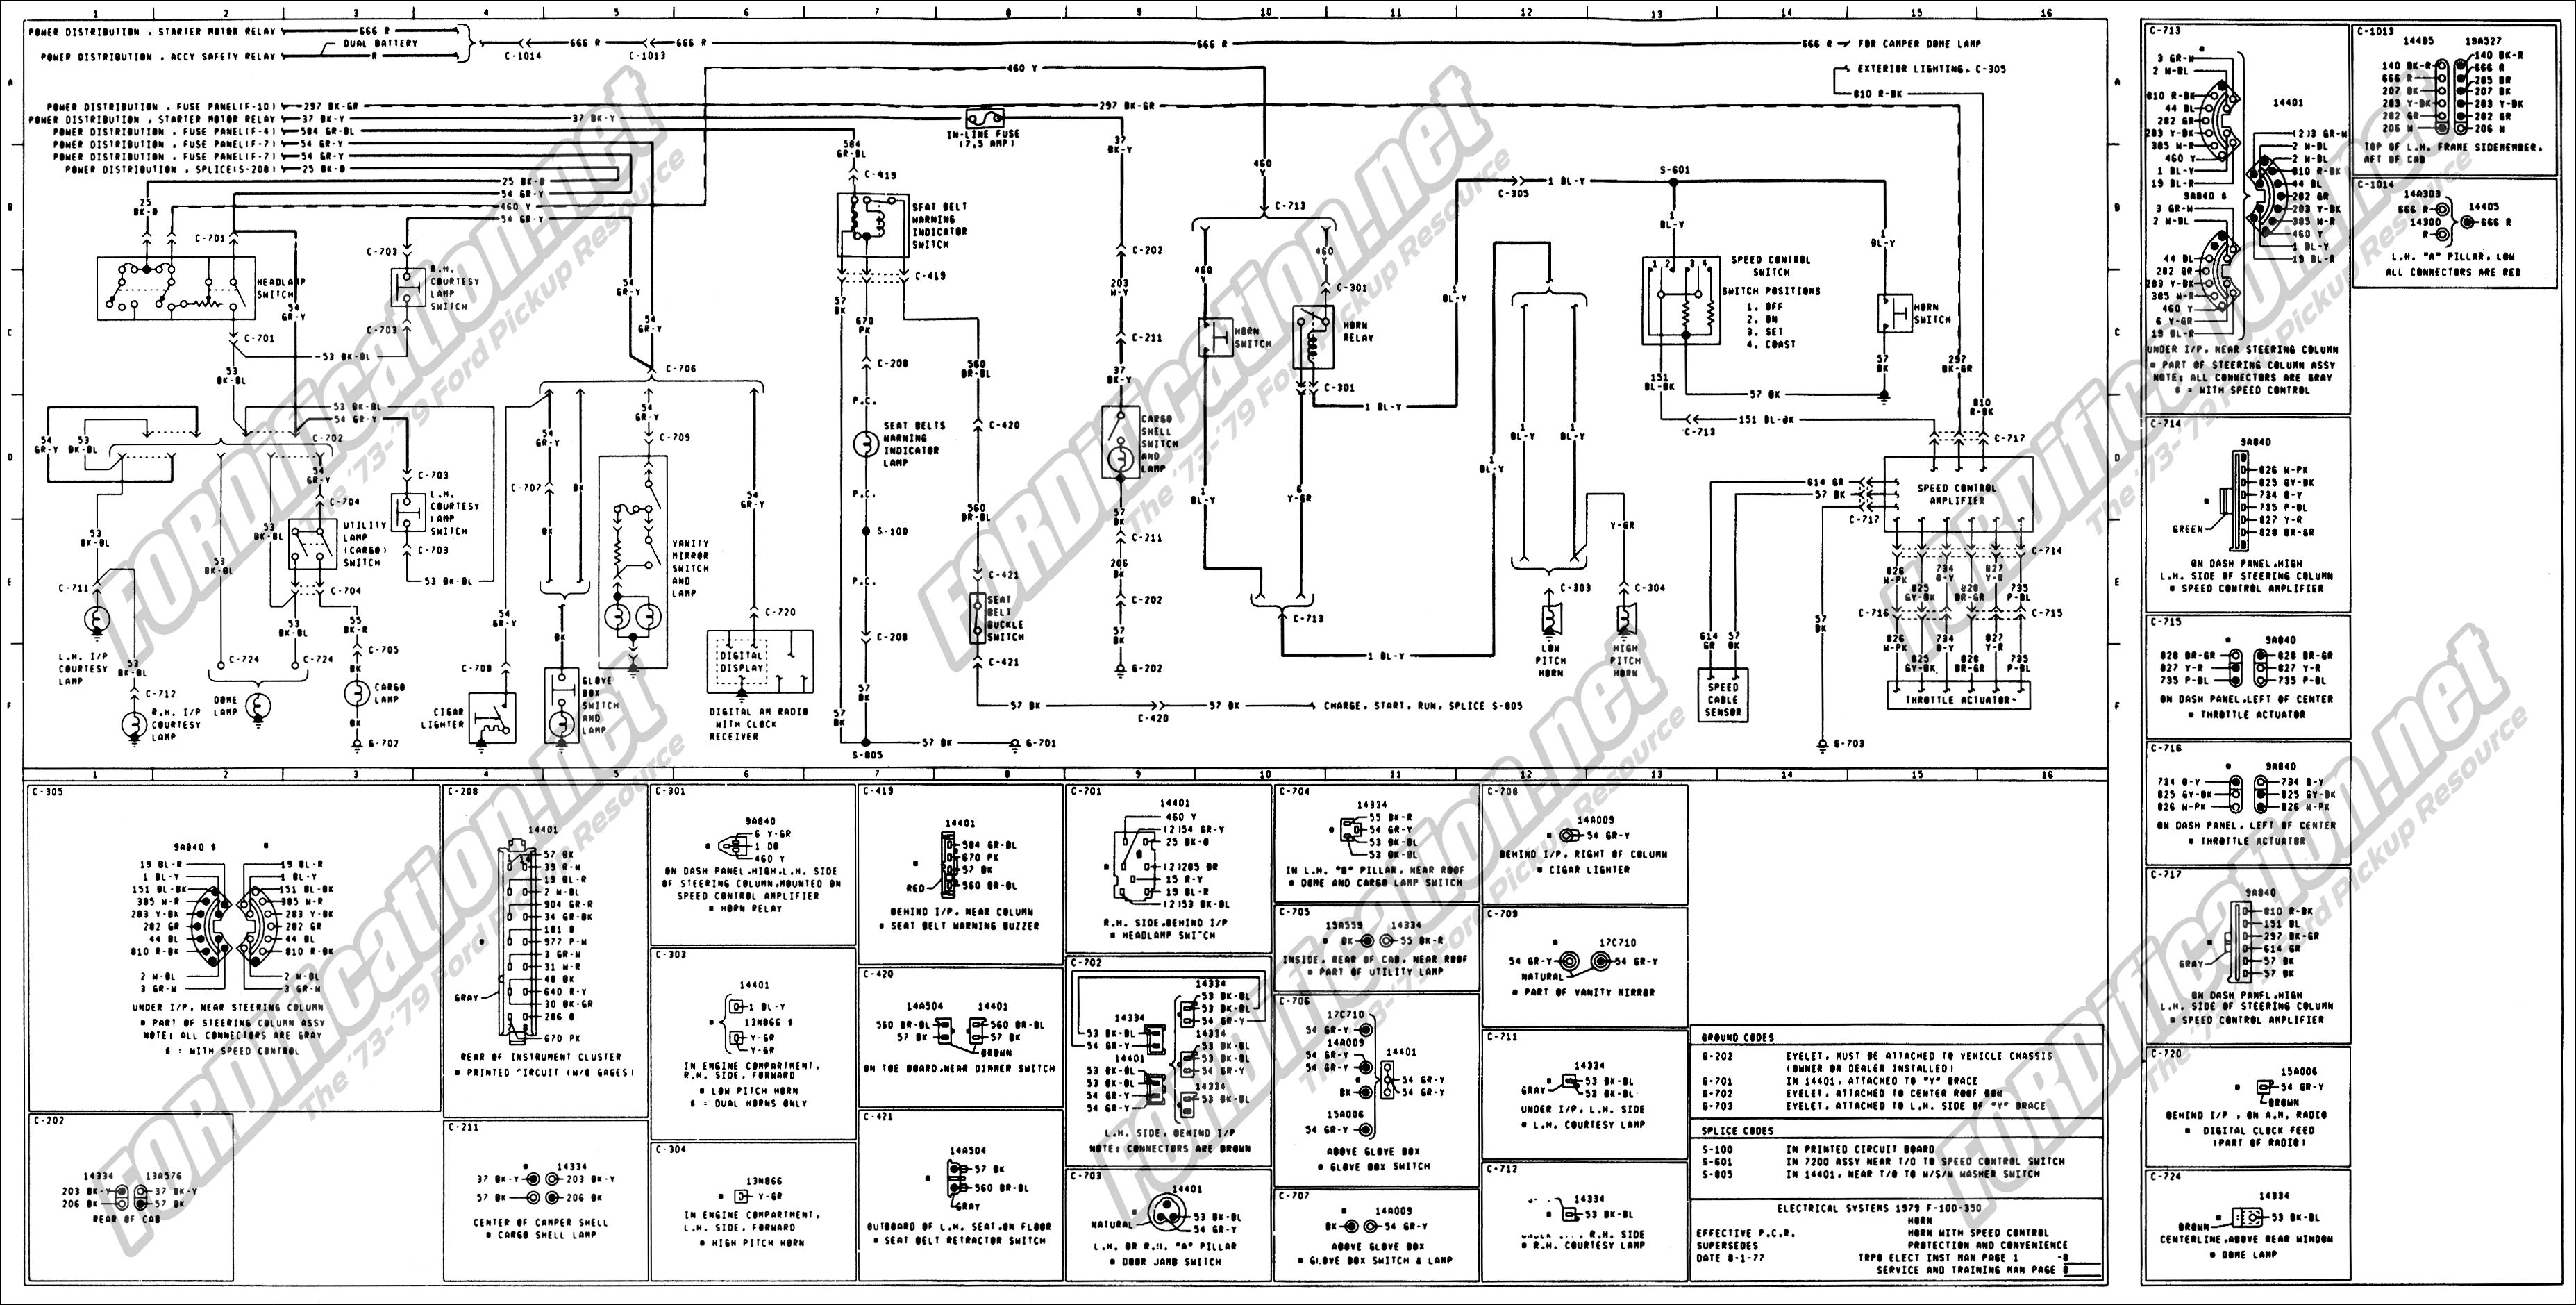 wiring_79master_8of9 1973 1979 ford truck wiring diagrams & schematics fordification net 1971 ford f250 wiring diagram at edmiracle.co